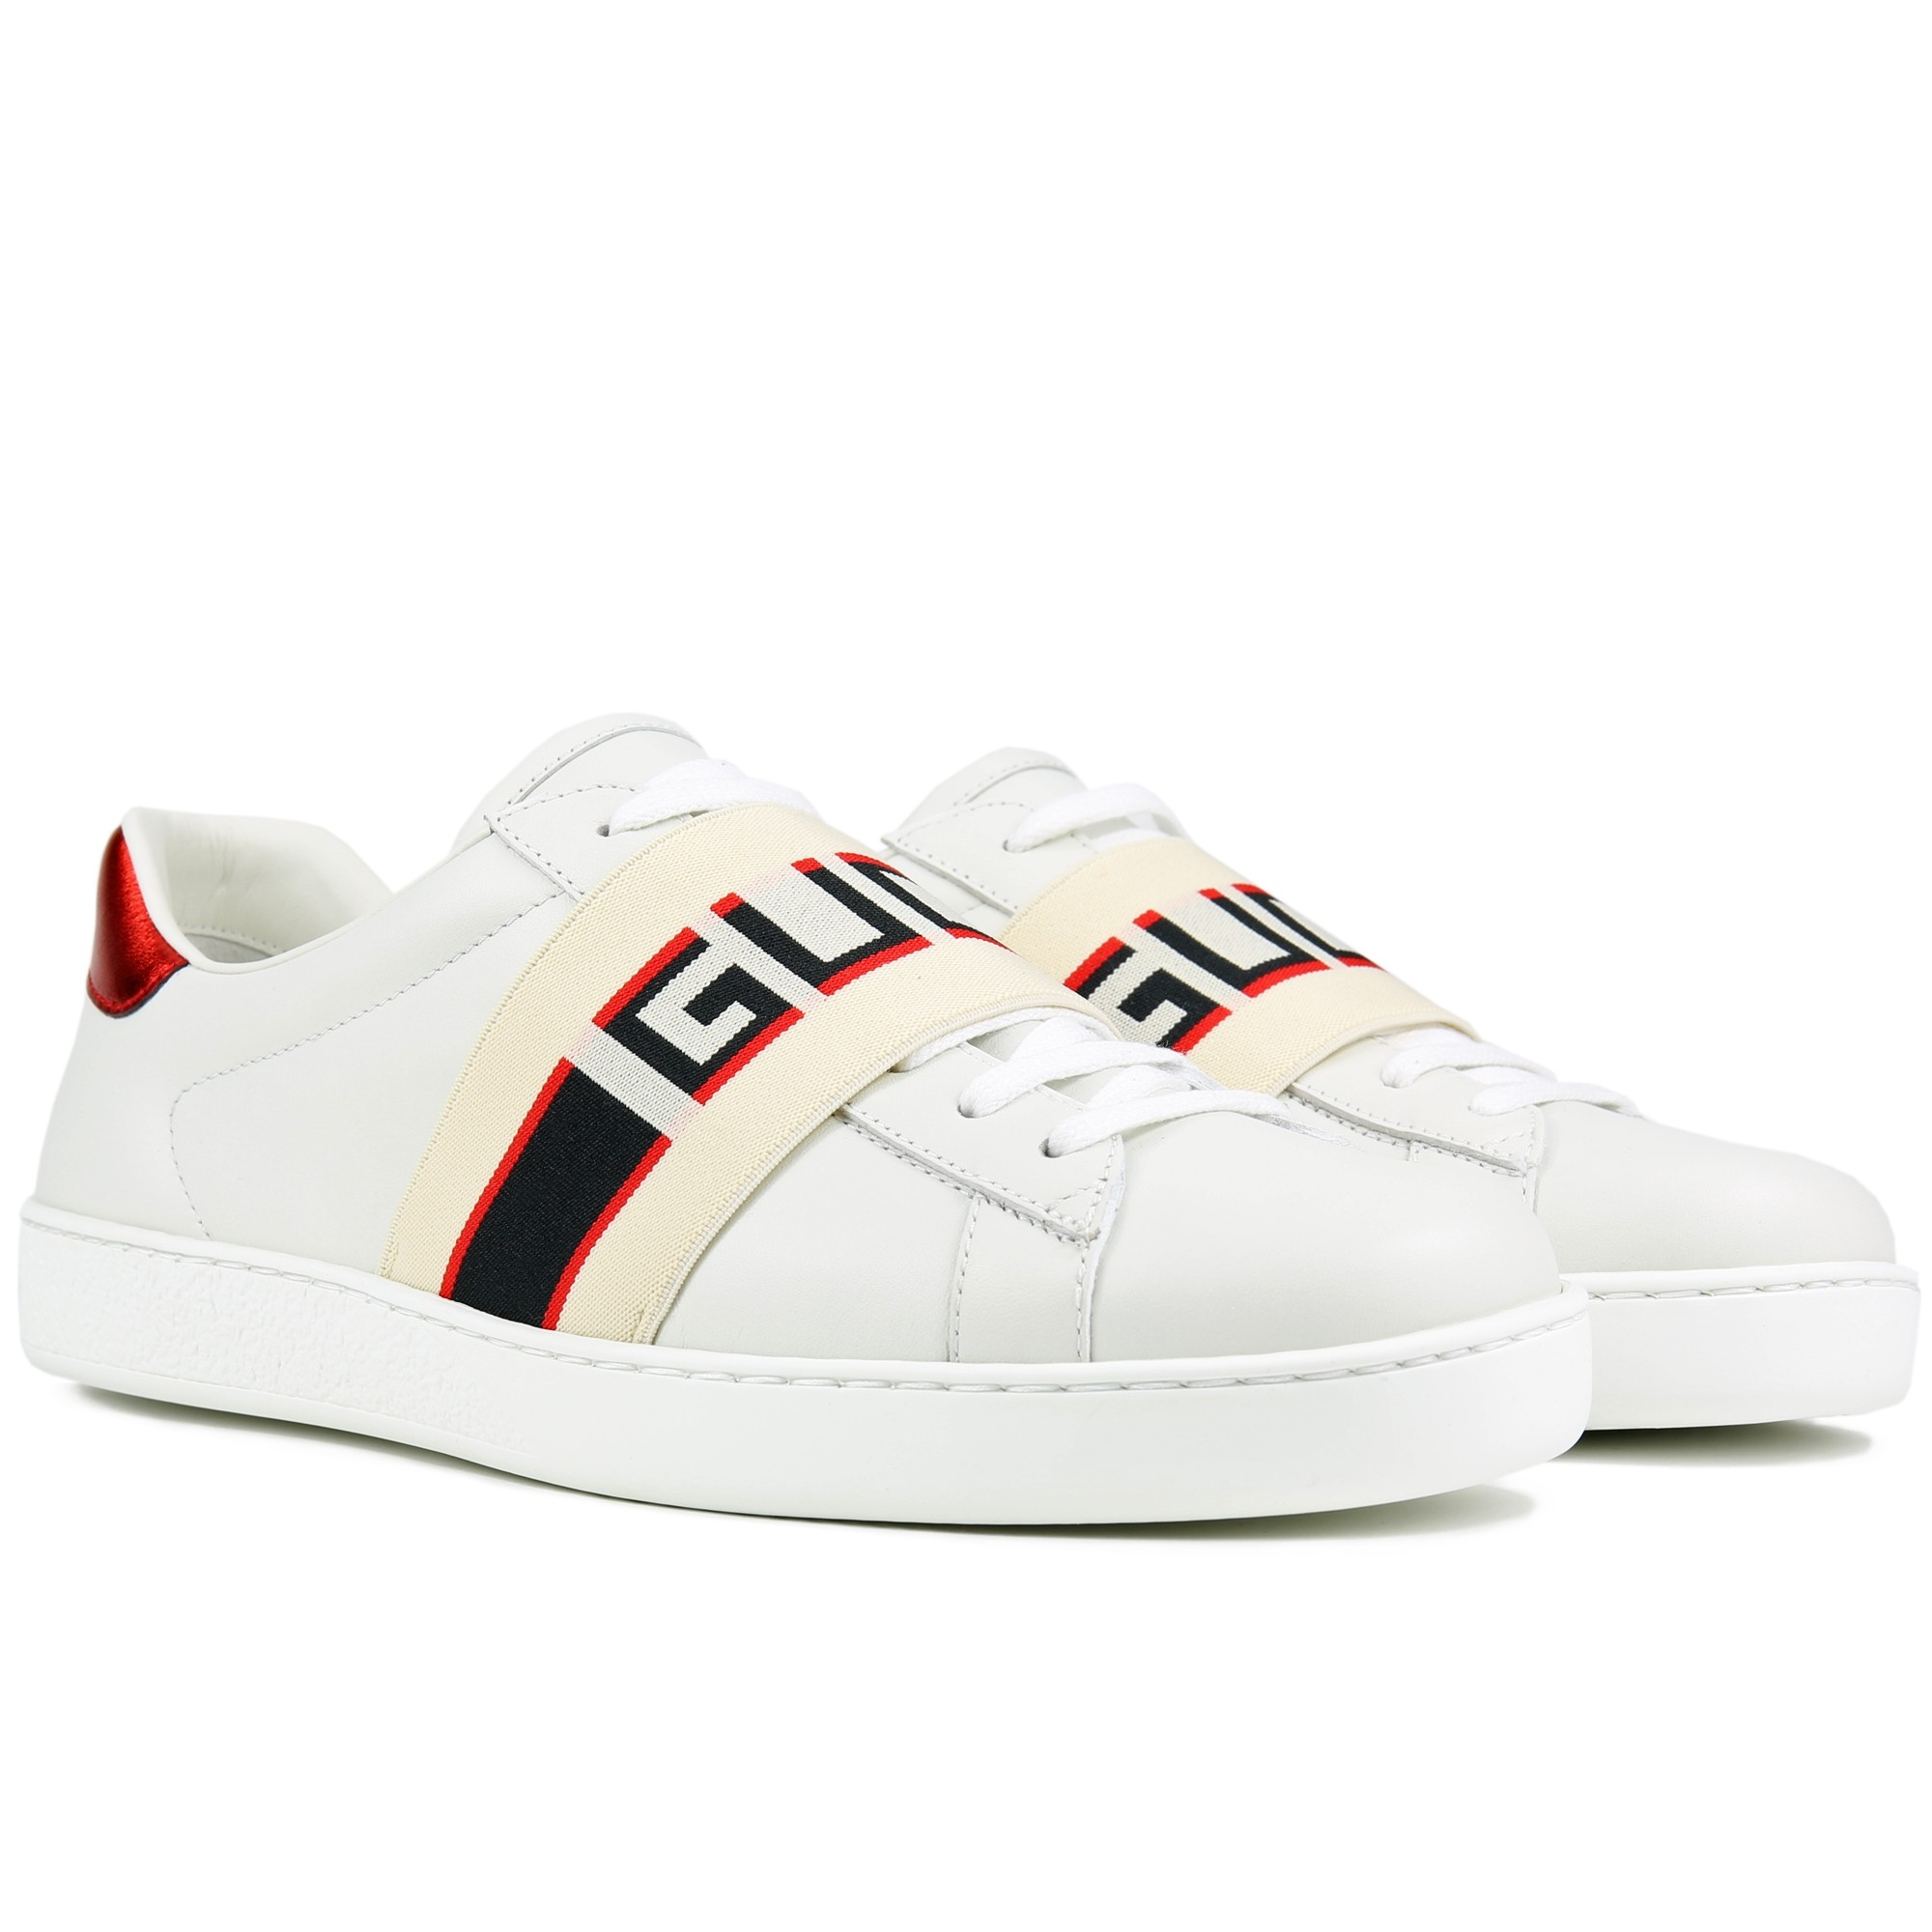 giay the thao tet 2019 - gucci ace sneaker monogram - elle man 3